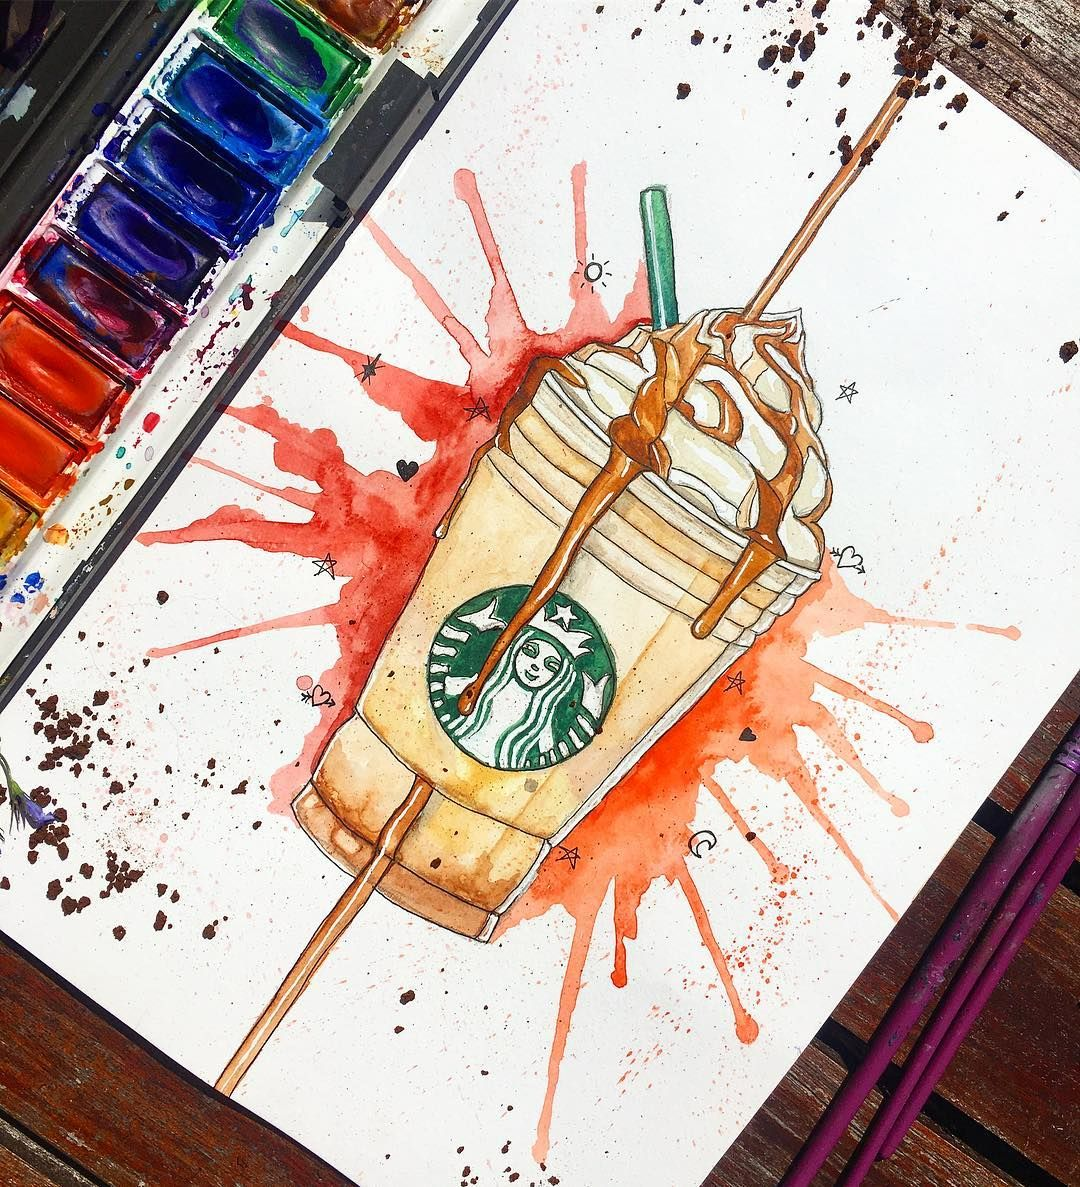 Caramel Frappuccino Starbucks Starbucksuk Hey So I Figured I M Going To Combine Quick Tumblr Sketc Starbucks Drawing Doodle Drawings Creative Drawing